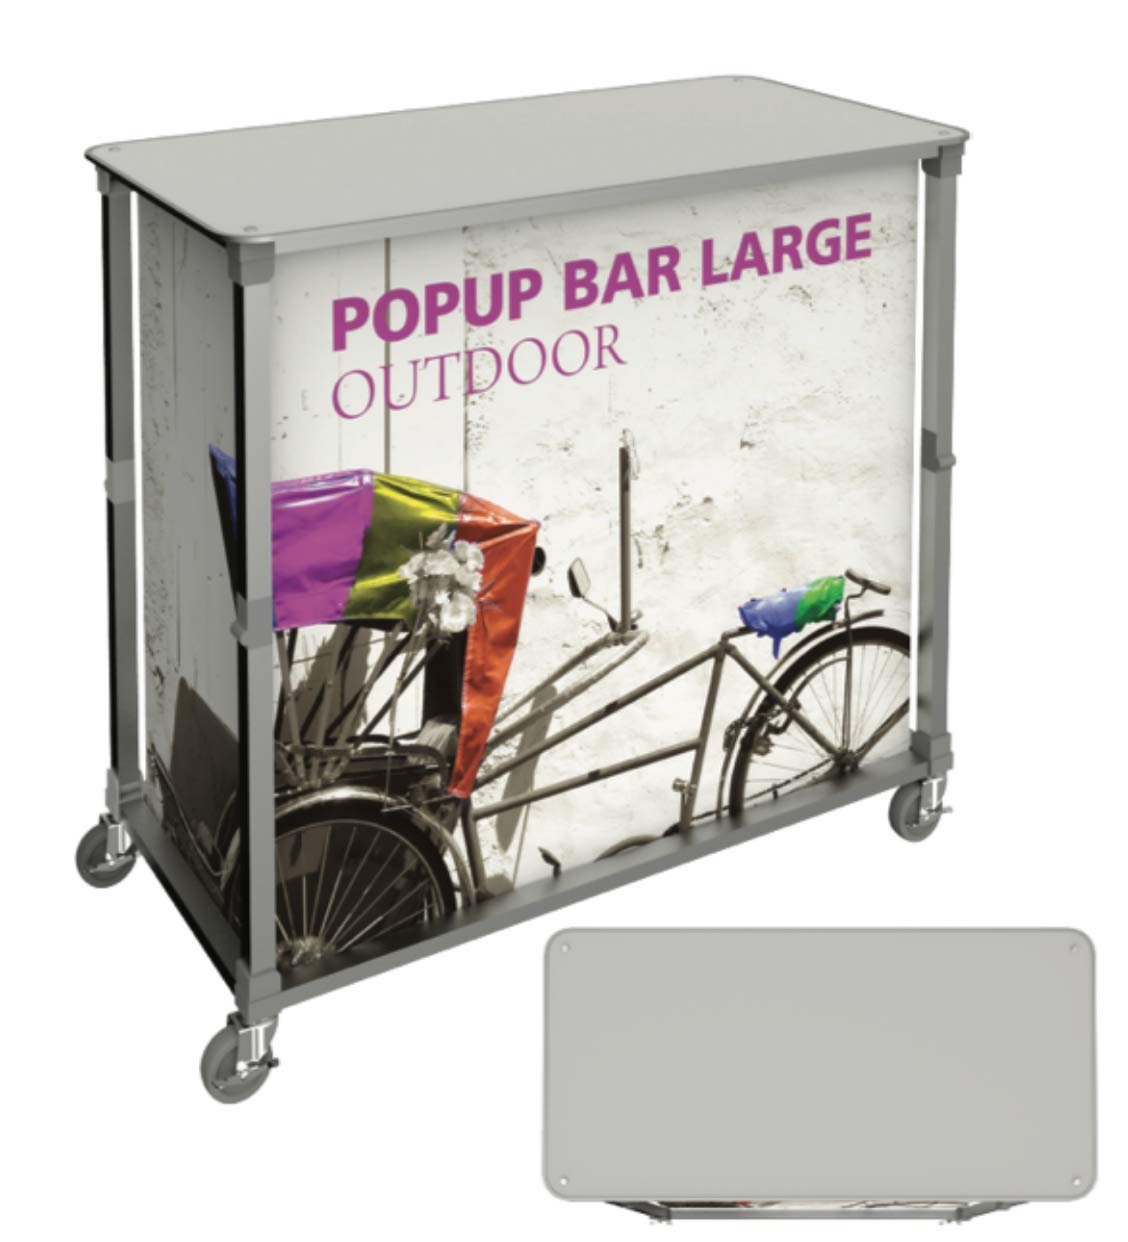 Large Portable Popup Bar by Display America (Image #1)